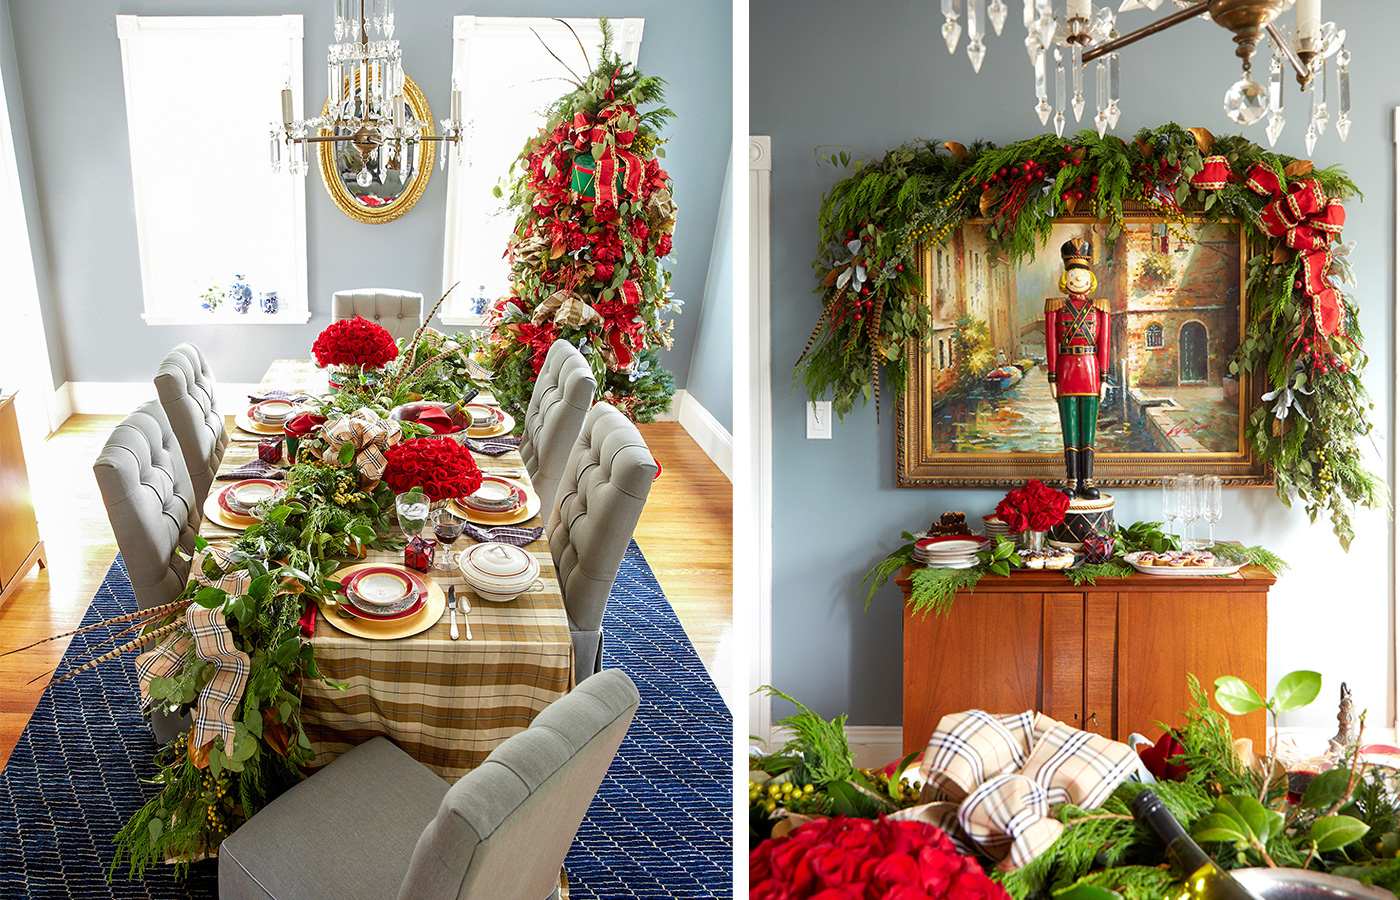 Holiday table setting and buffet decorated with greenery